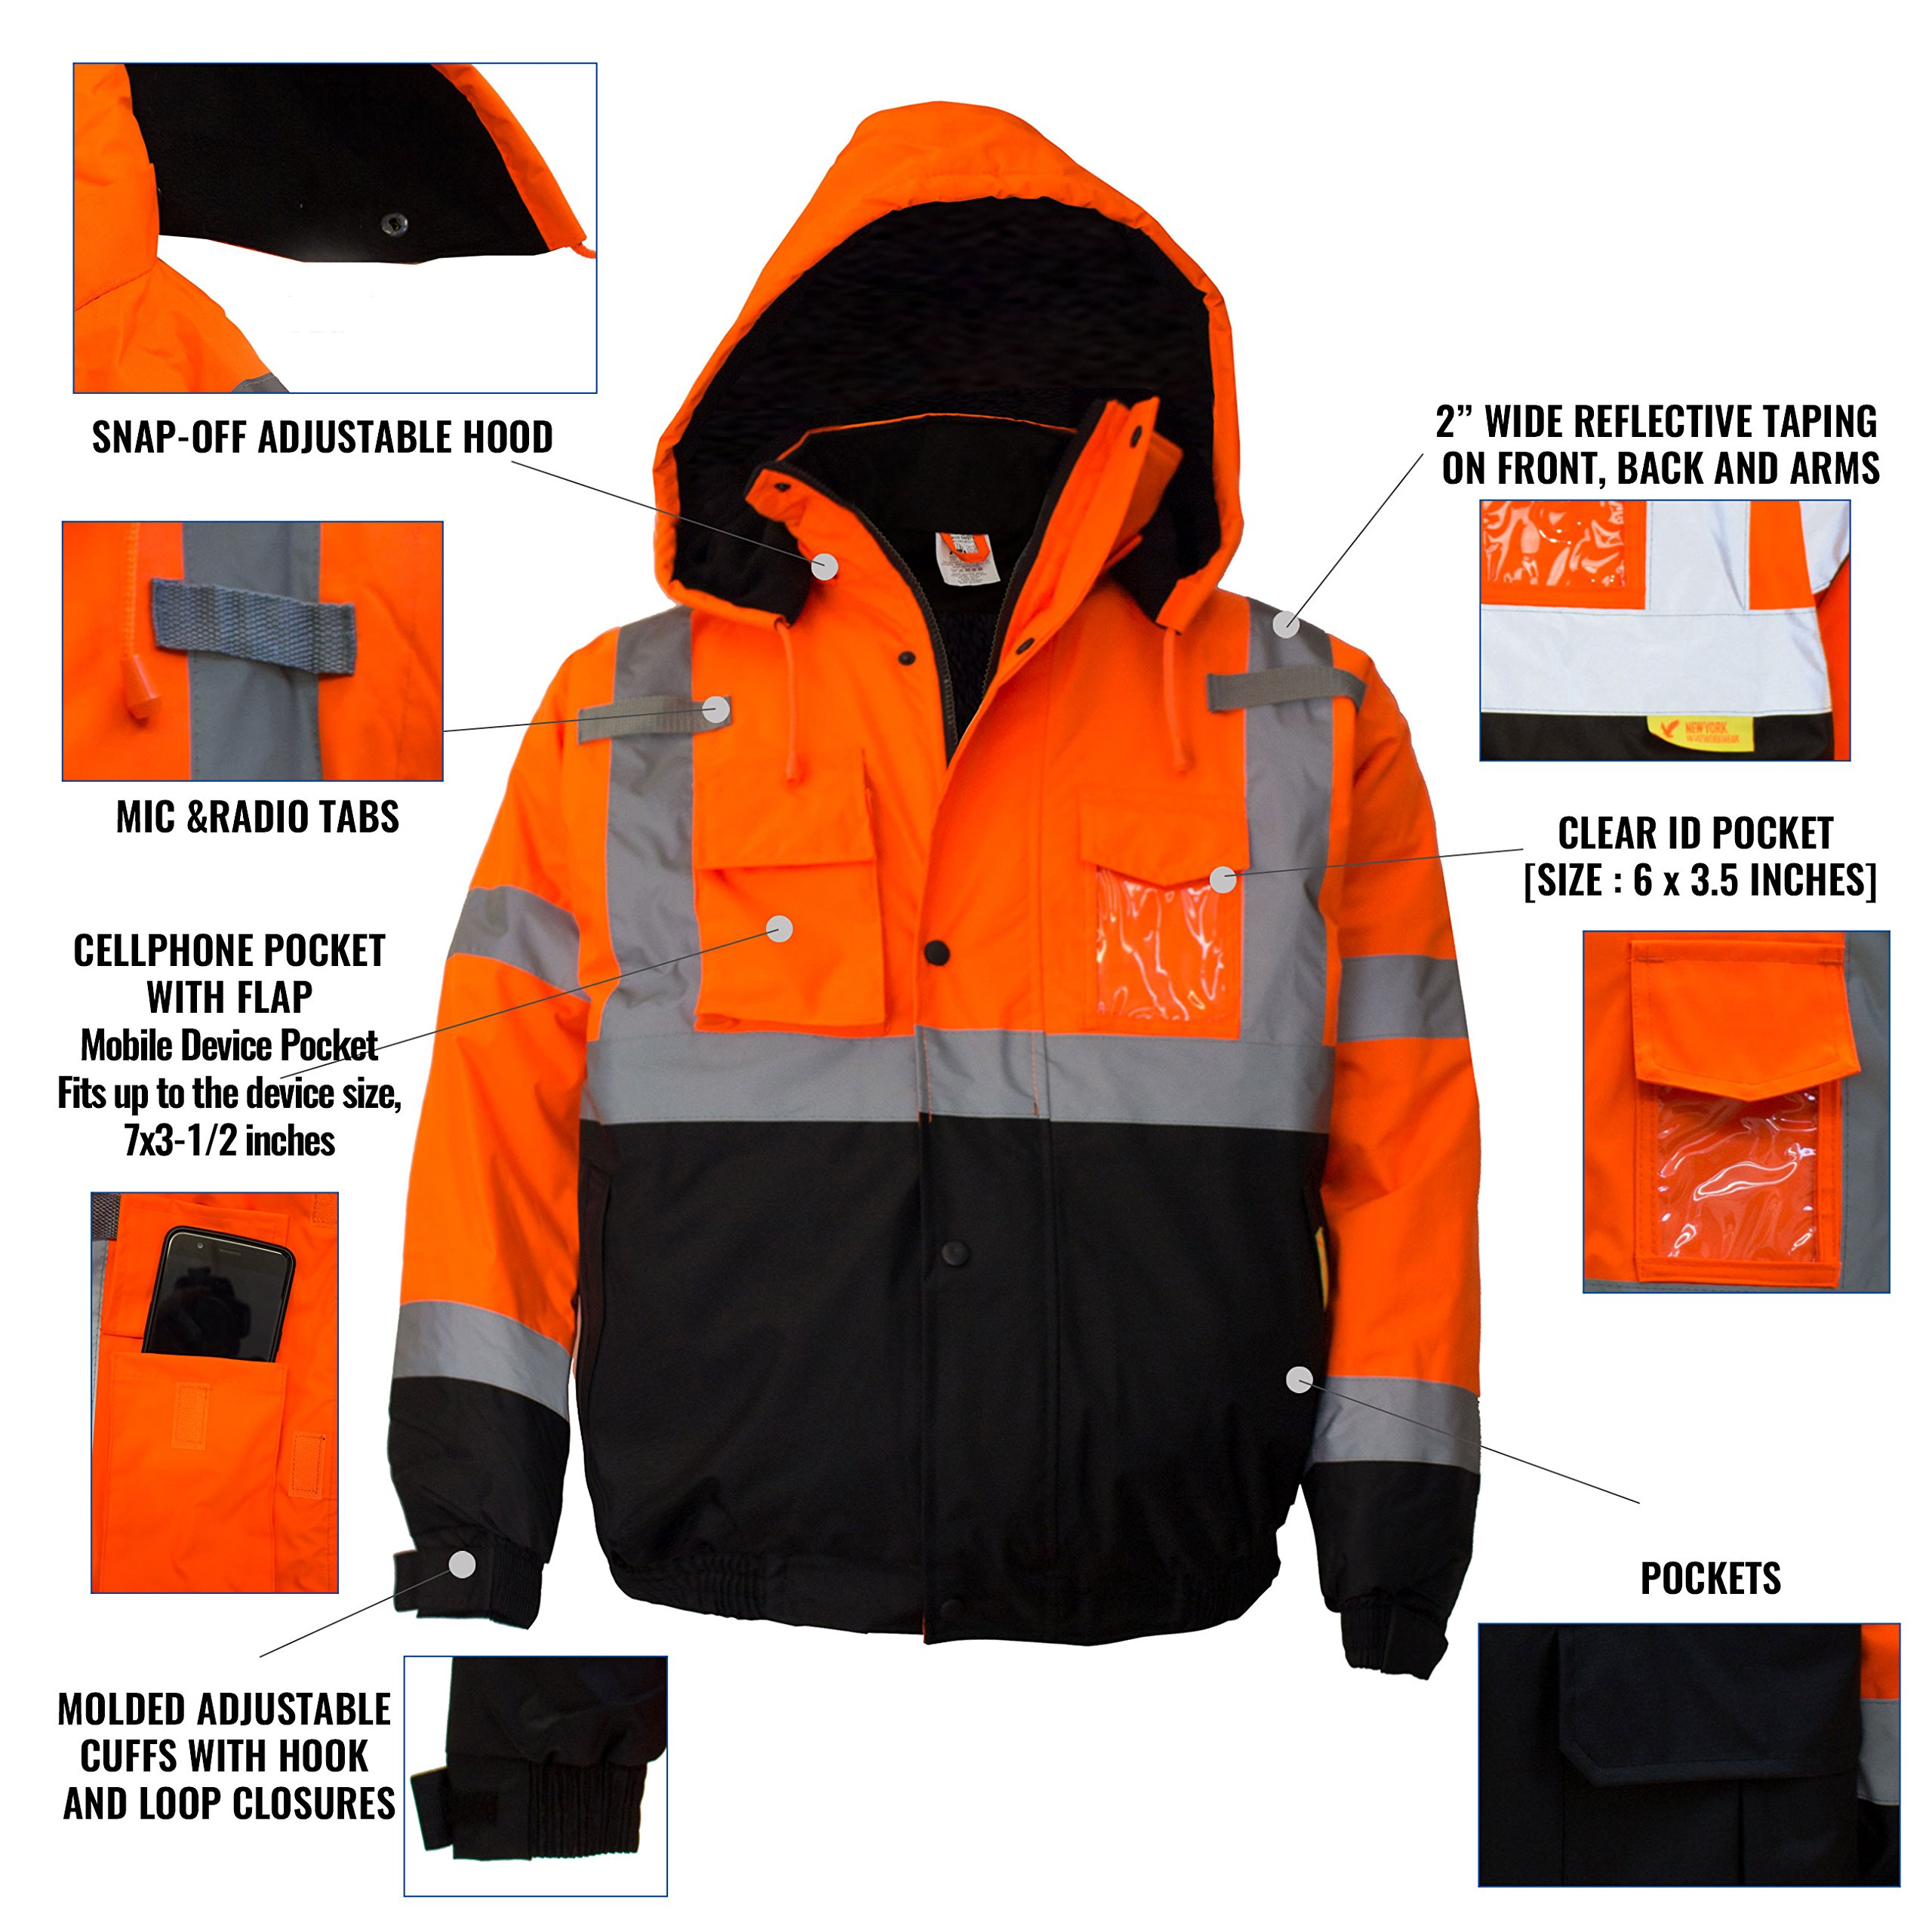 New York Hi-Viz Workwear WJ9011-L Men's ANSI Class 3 High Visibility Bomber Safety Jacket, Waterproof (Large, Orange) by New York Hi-Viz Workwear (Image #9)